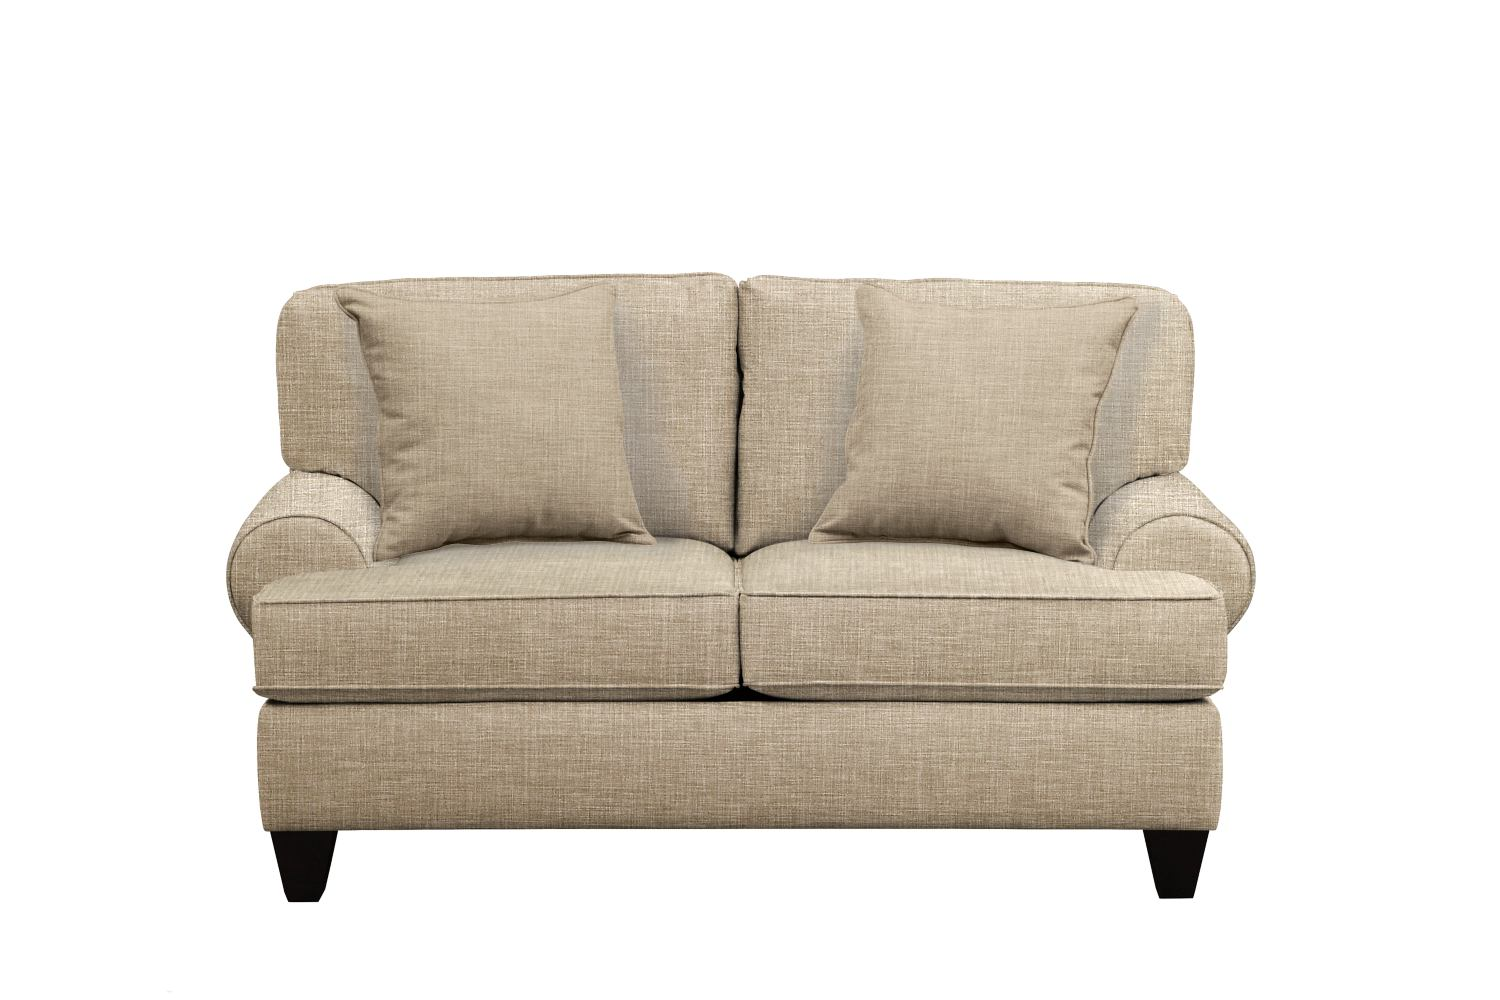 "Living Room Furniture - Bailey Roll Arm Sofa 67"" Milford II Toast w/ Milford II Toast  Pillow"